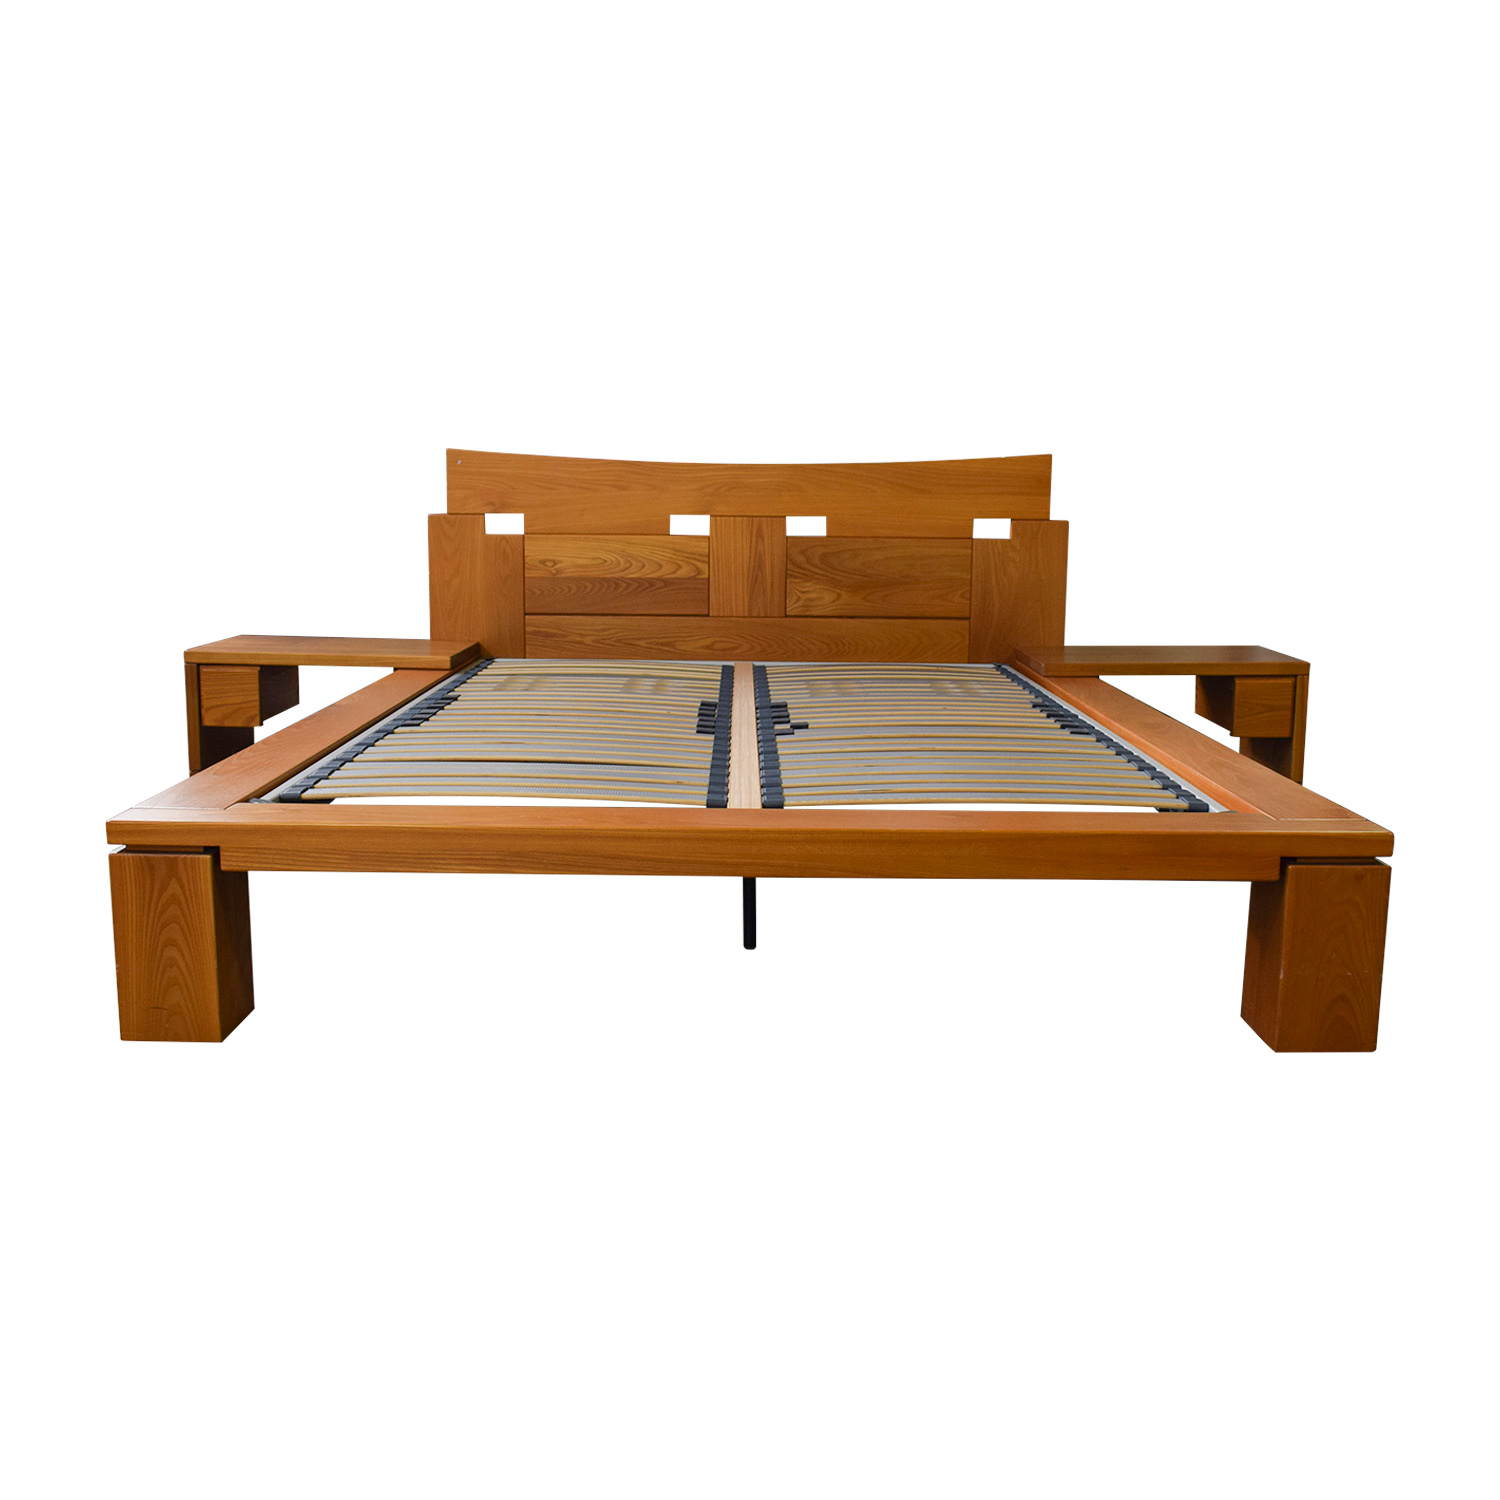 69 Off Roche Bobois Wood Platform Full Bed Frame With End Tables Beds